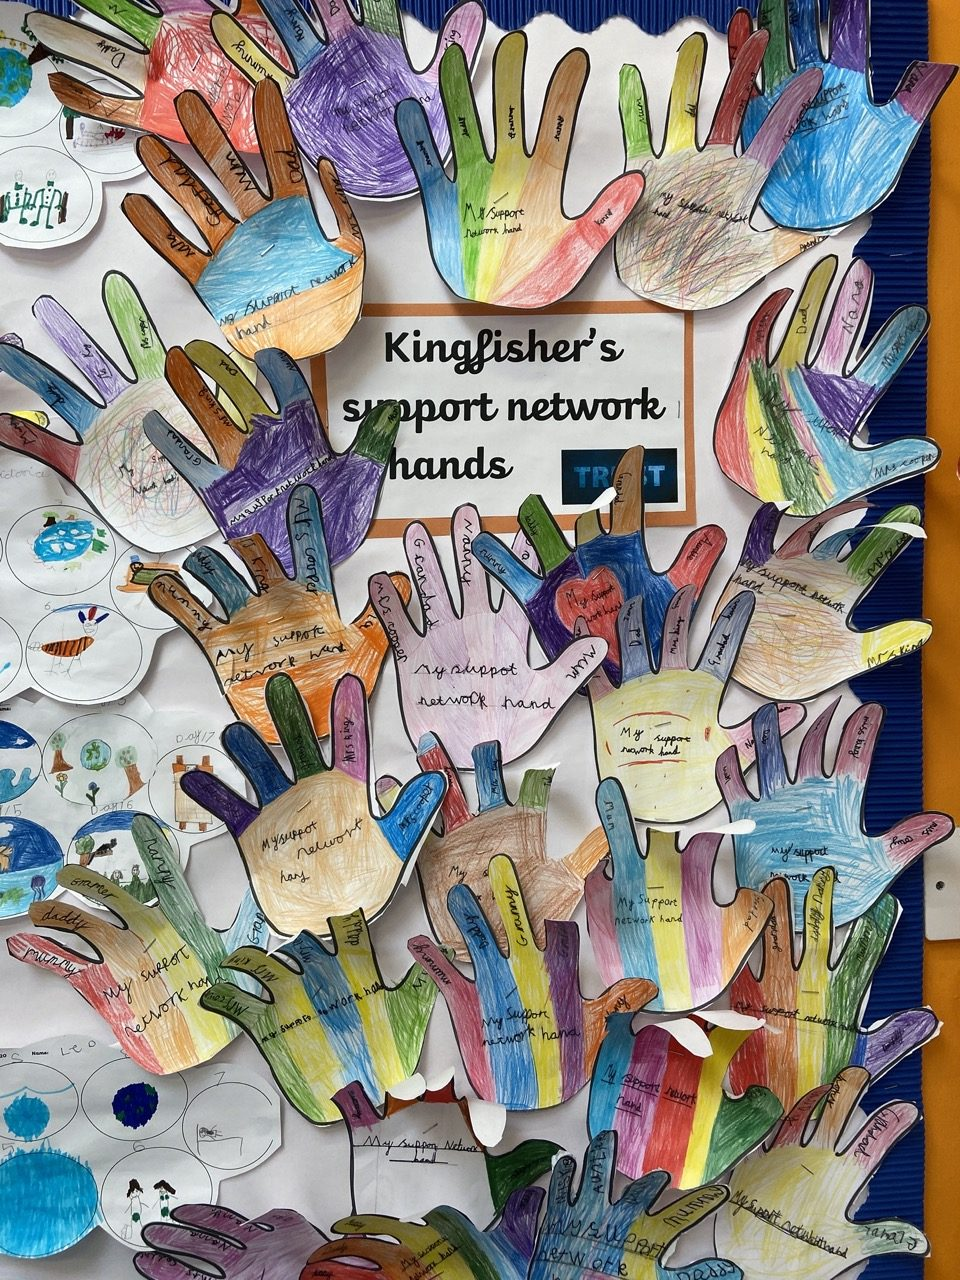 Safety Network Hands